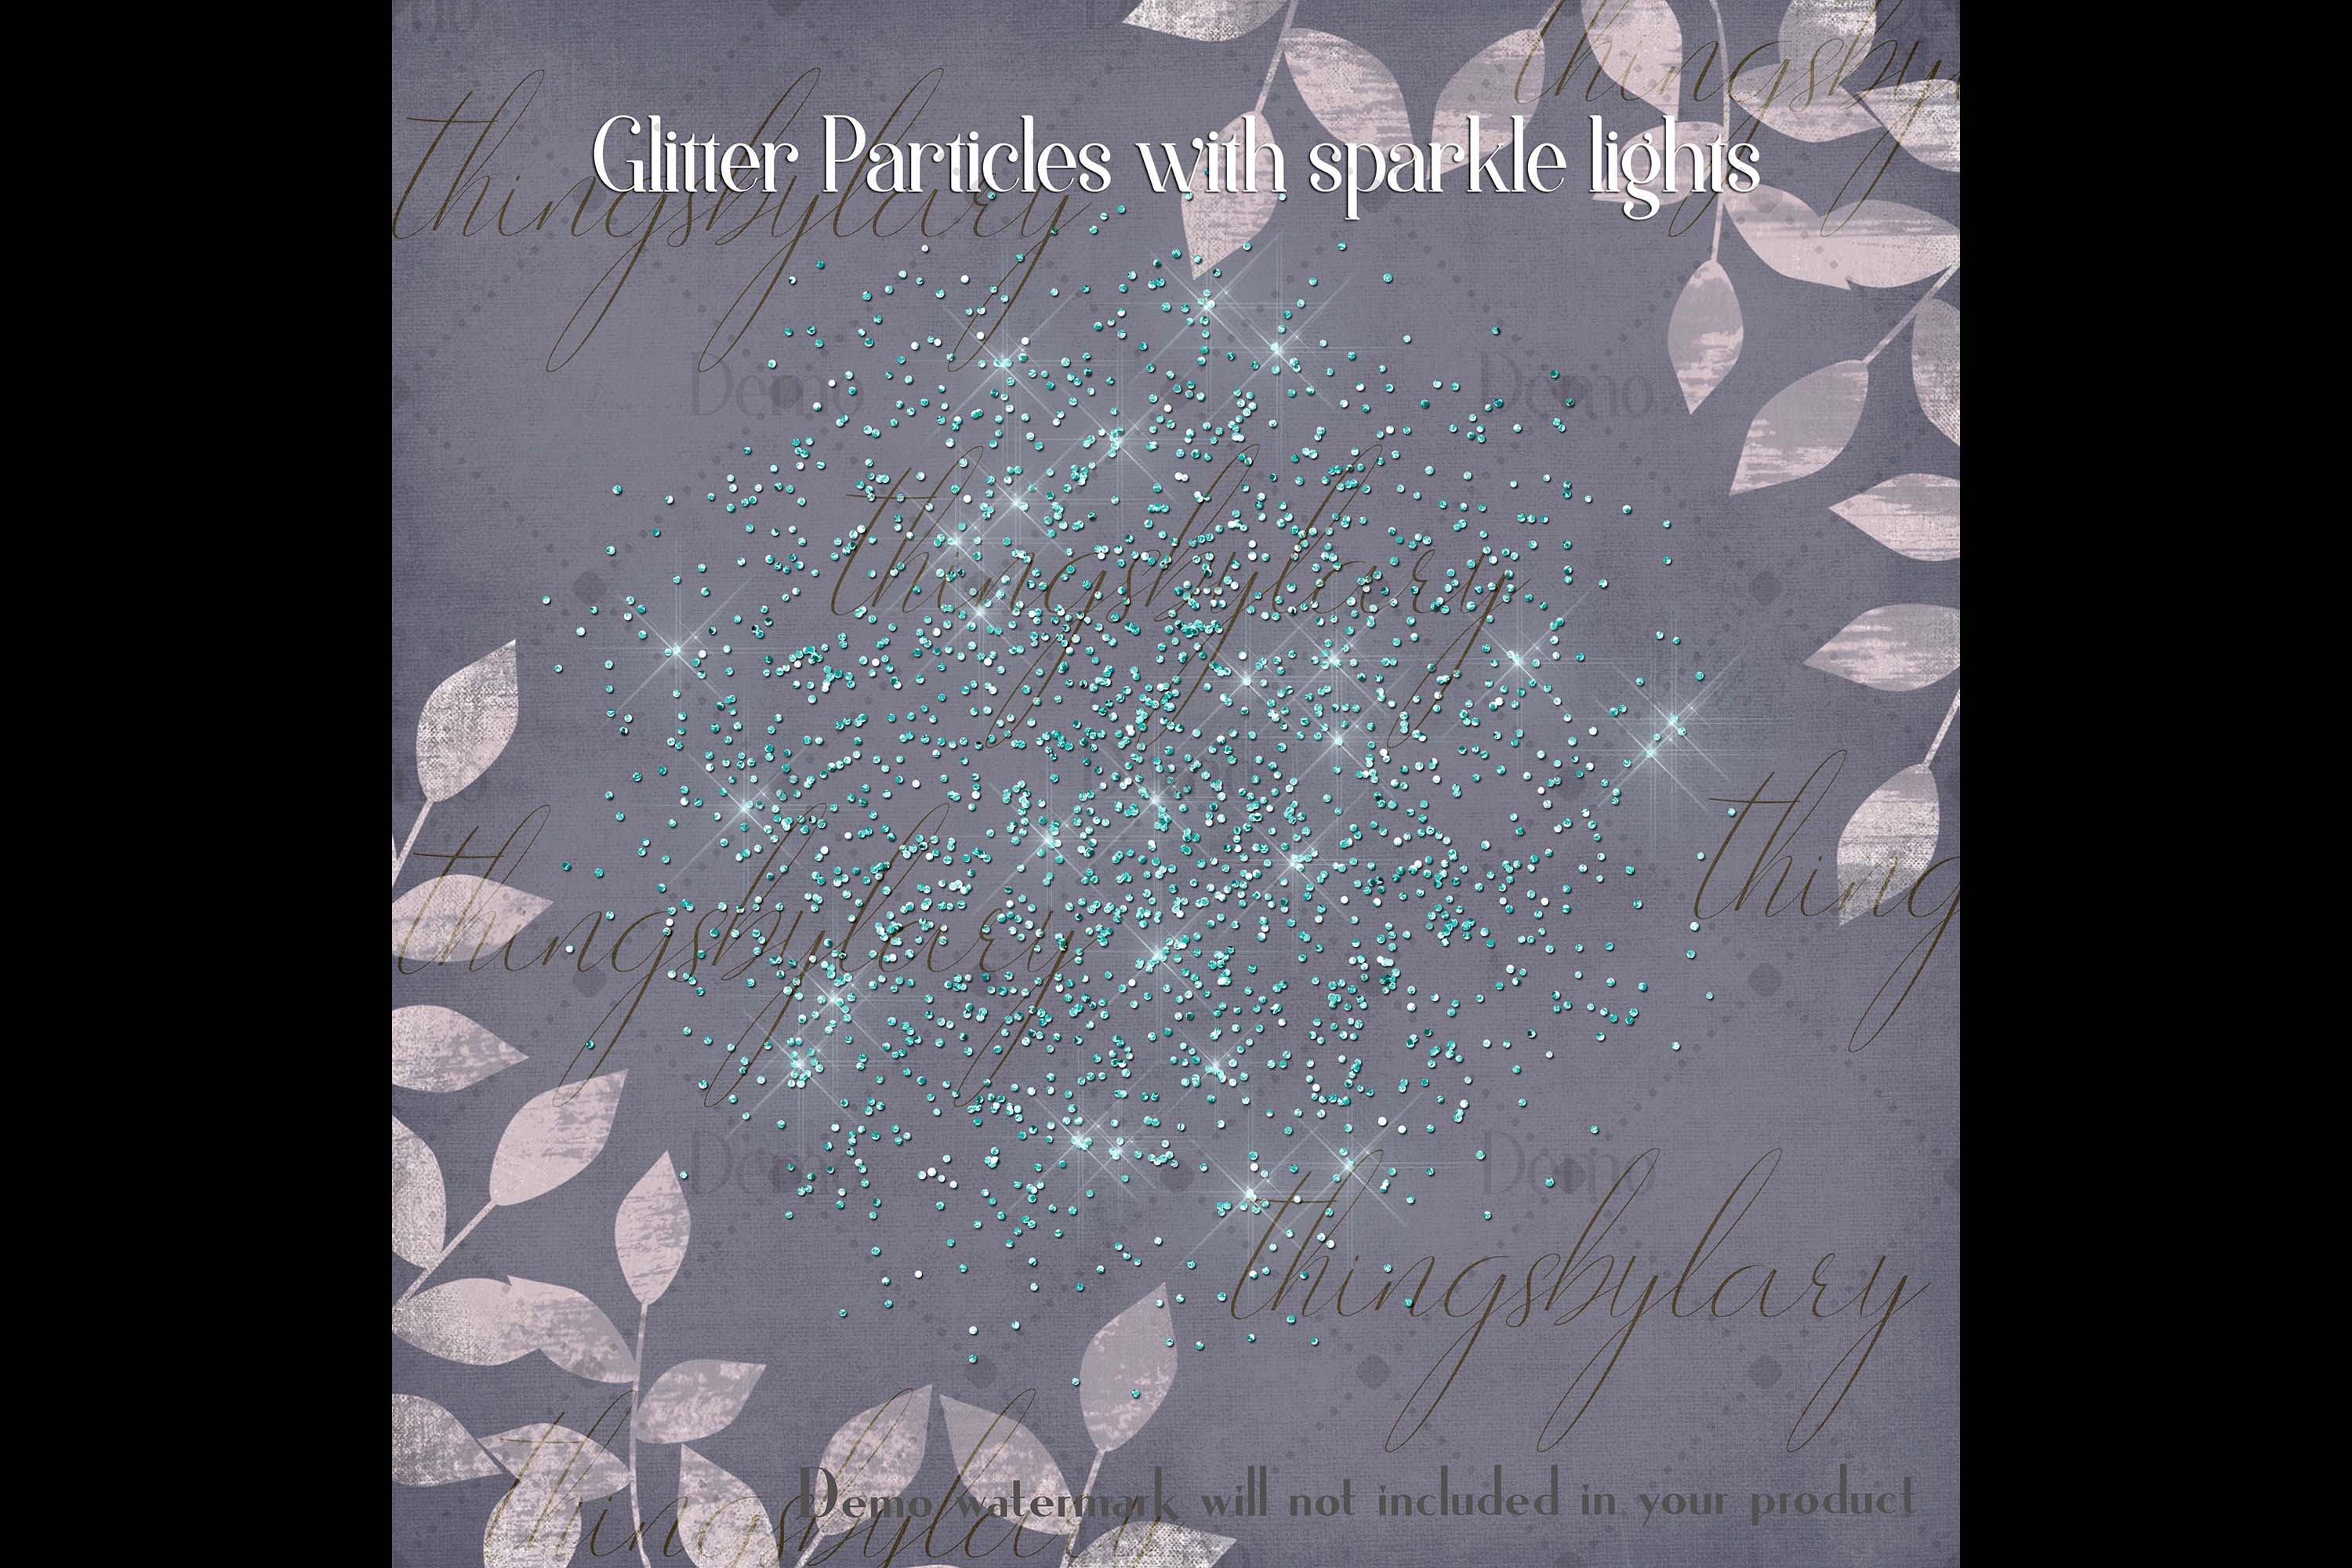 32 Glitter Particles Overlay Images Glitter Dust Confetti example image 5